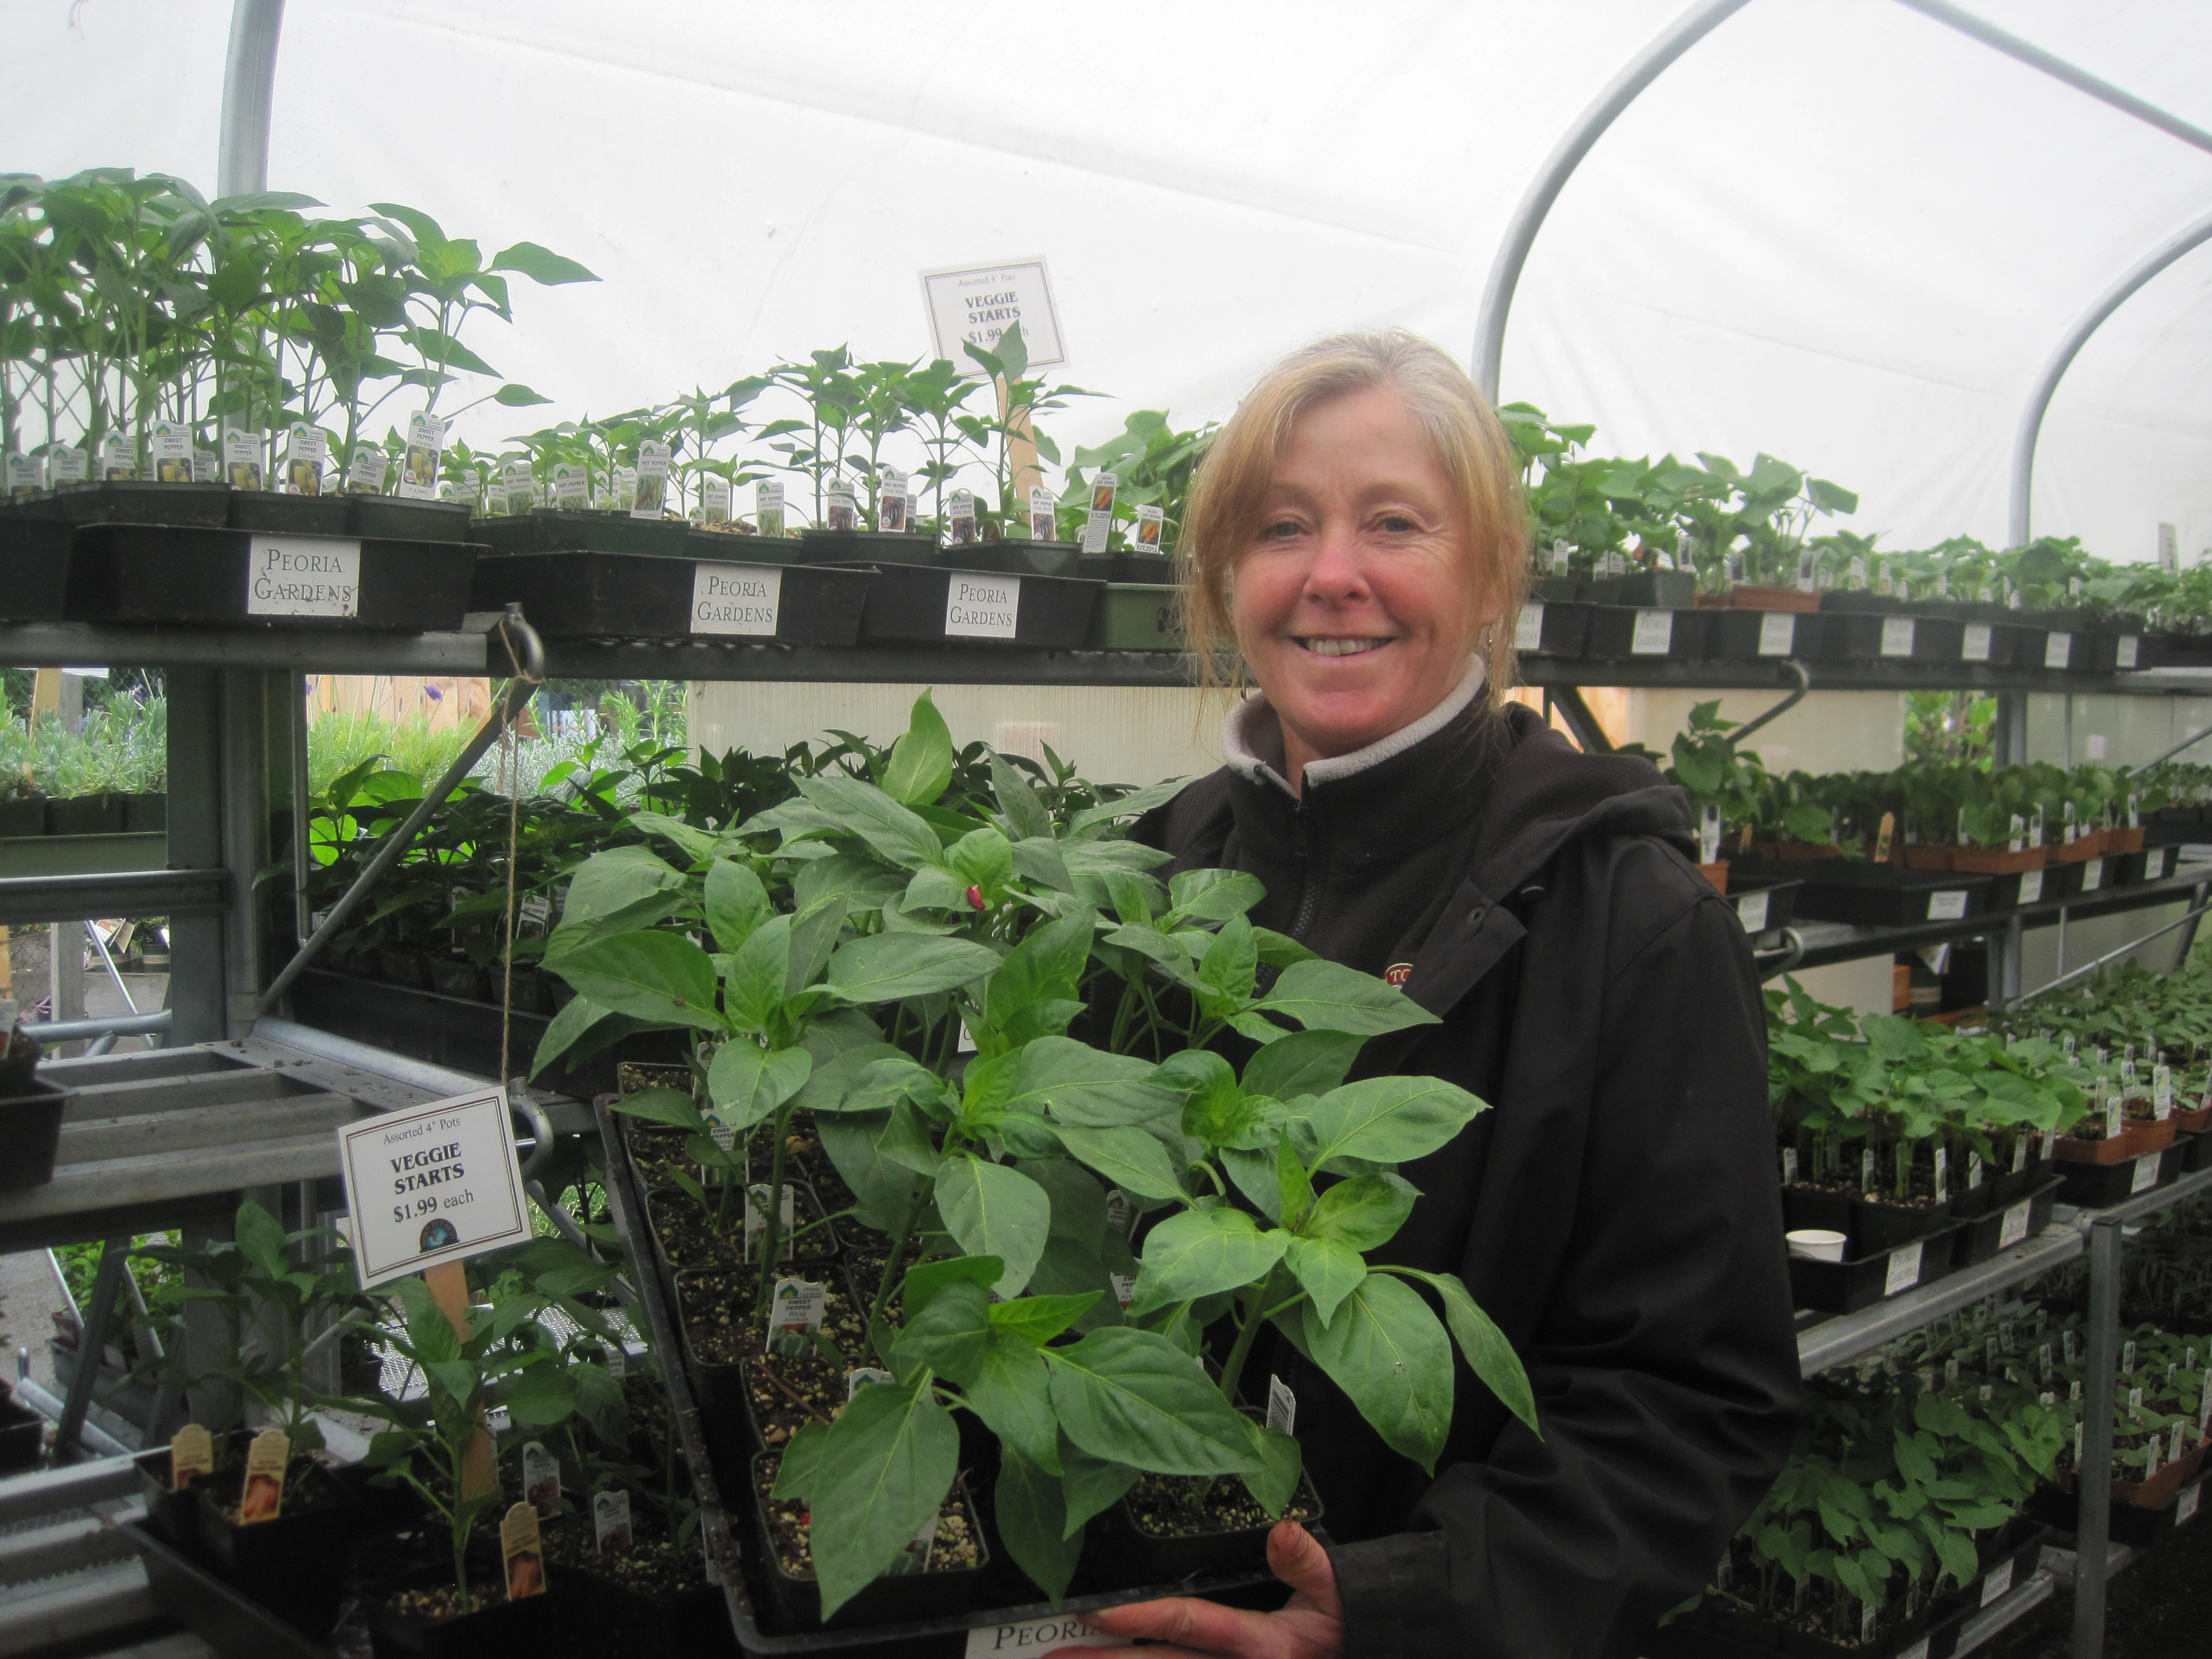 Carol Tuffo, the plant buyer for Down to Earth in Eugene, offered about 40 pepper varieties this season. Photo by Vanessa Salvia.